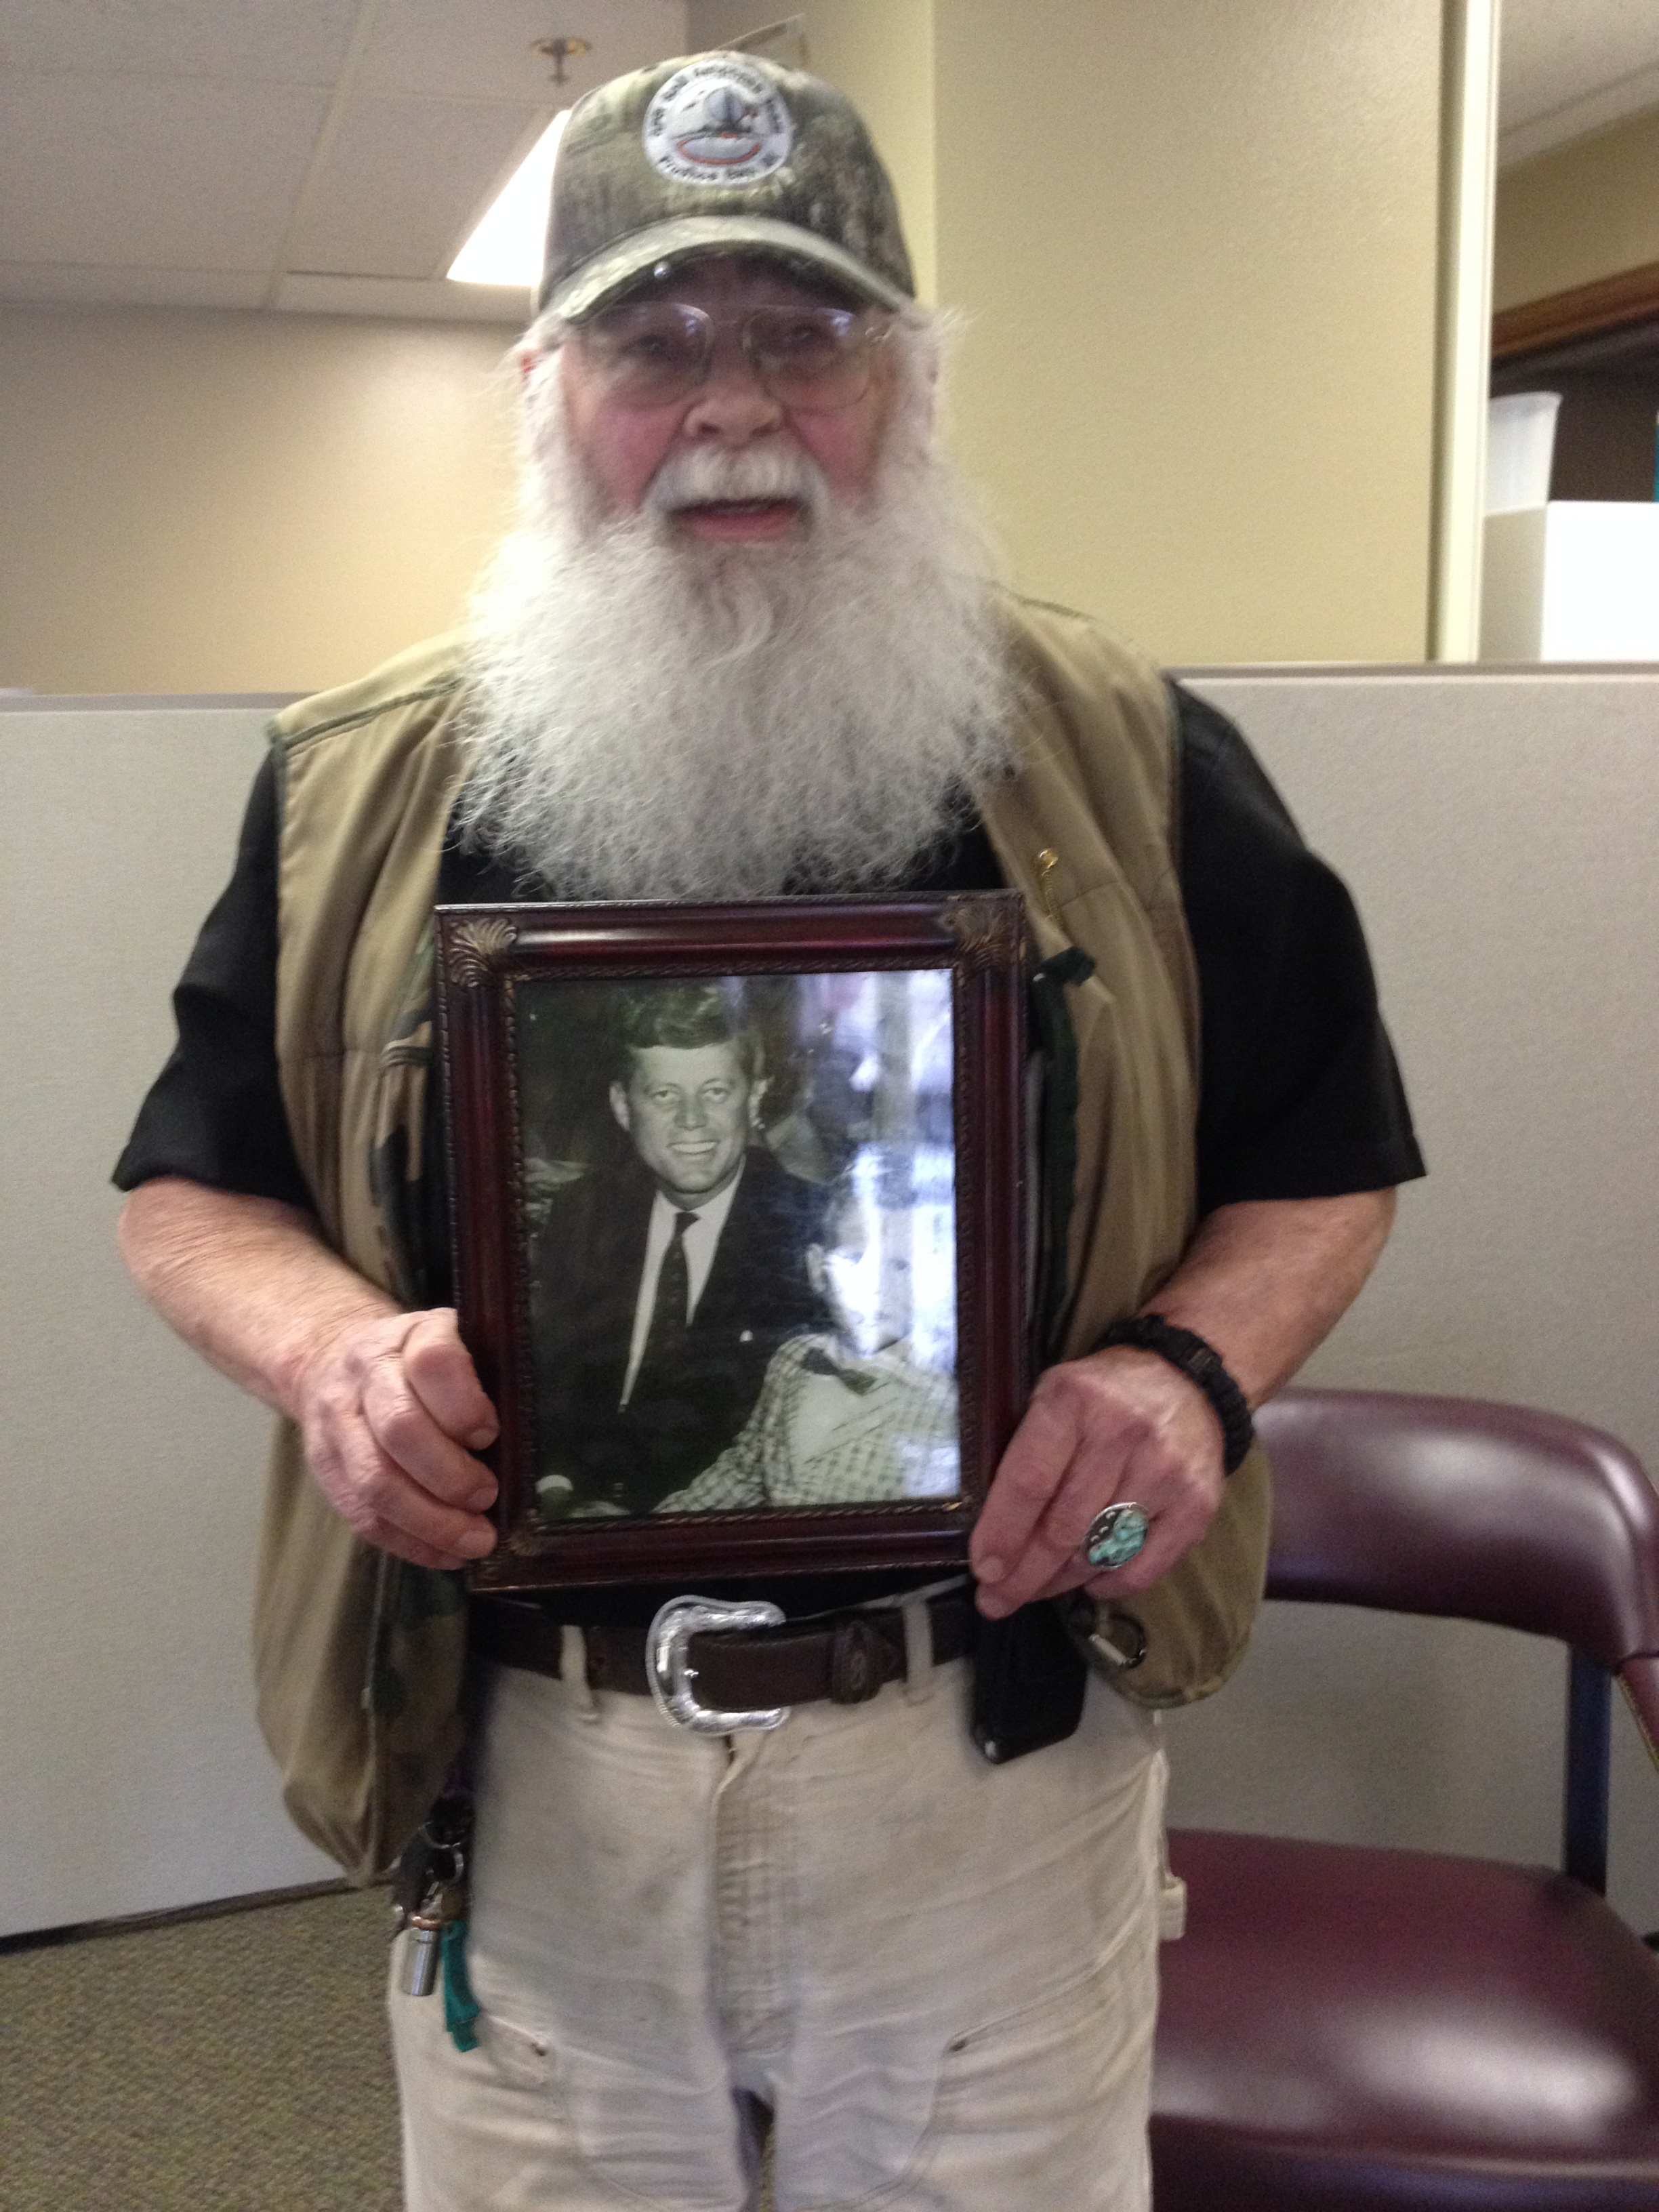 Terry VanLeuven holding his copy of the Kennedy photograph. (Photo by Mary Tarr)